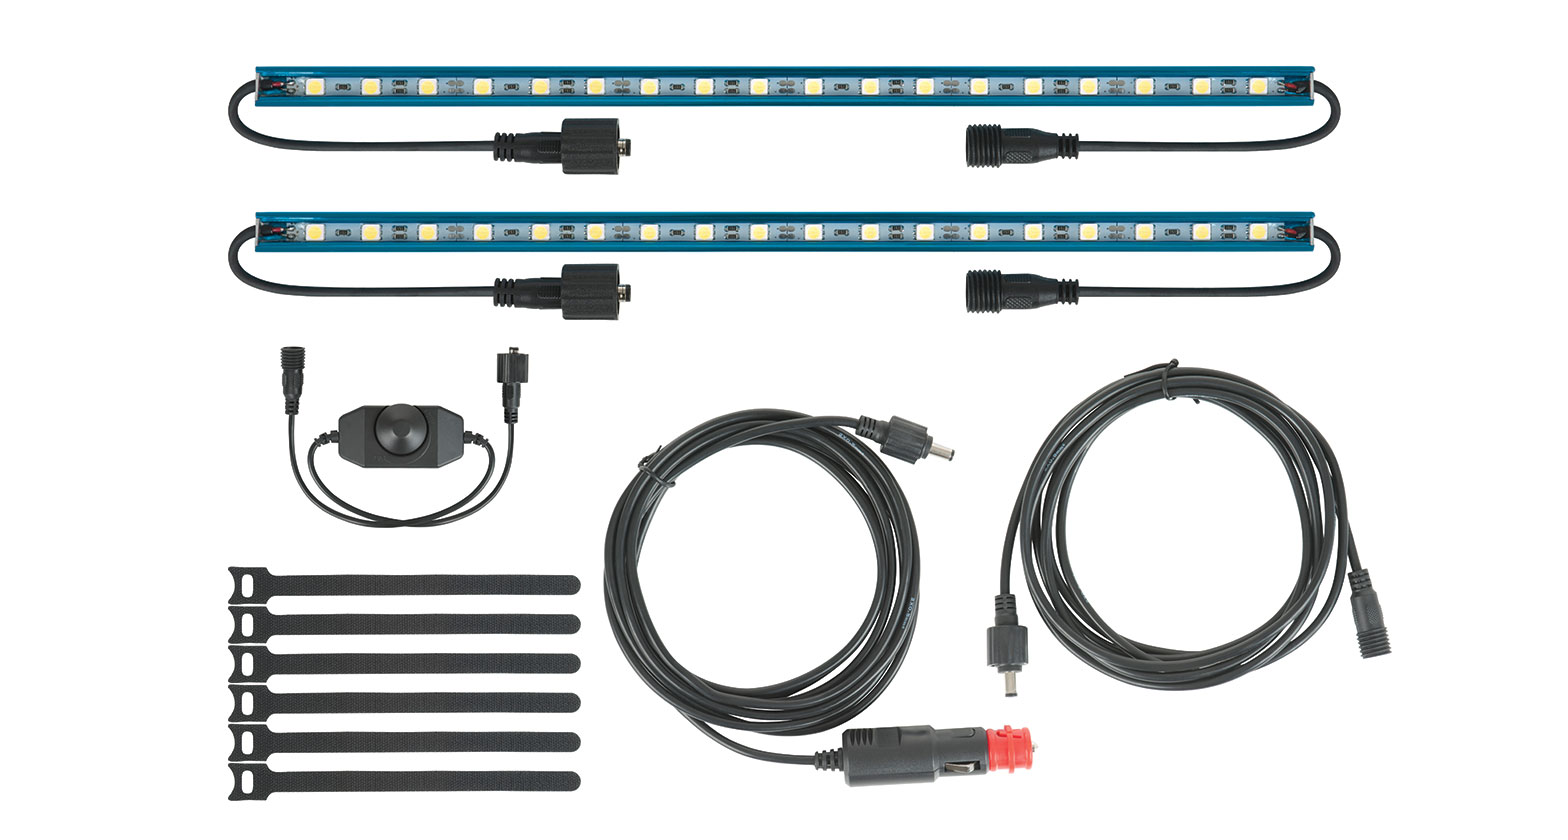 Rhino-Rack Foxwing LED Light Kit